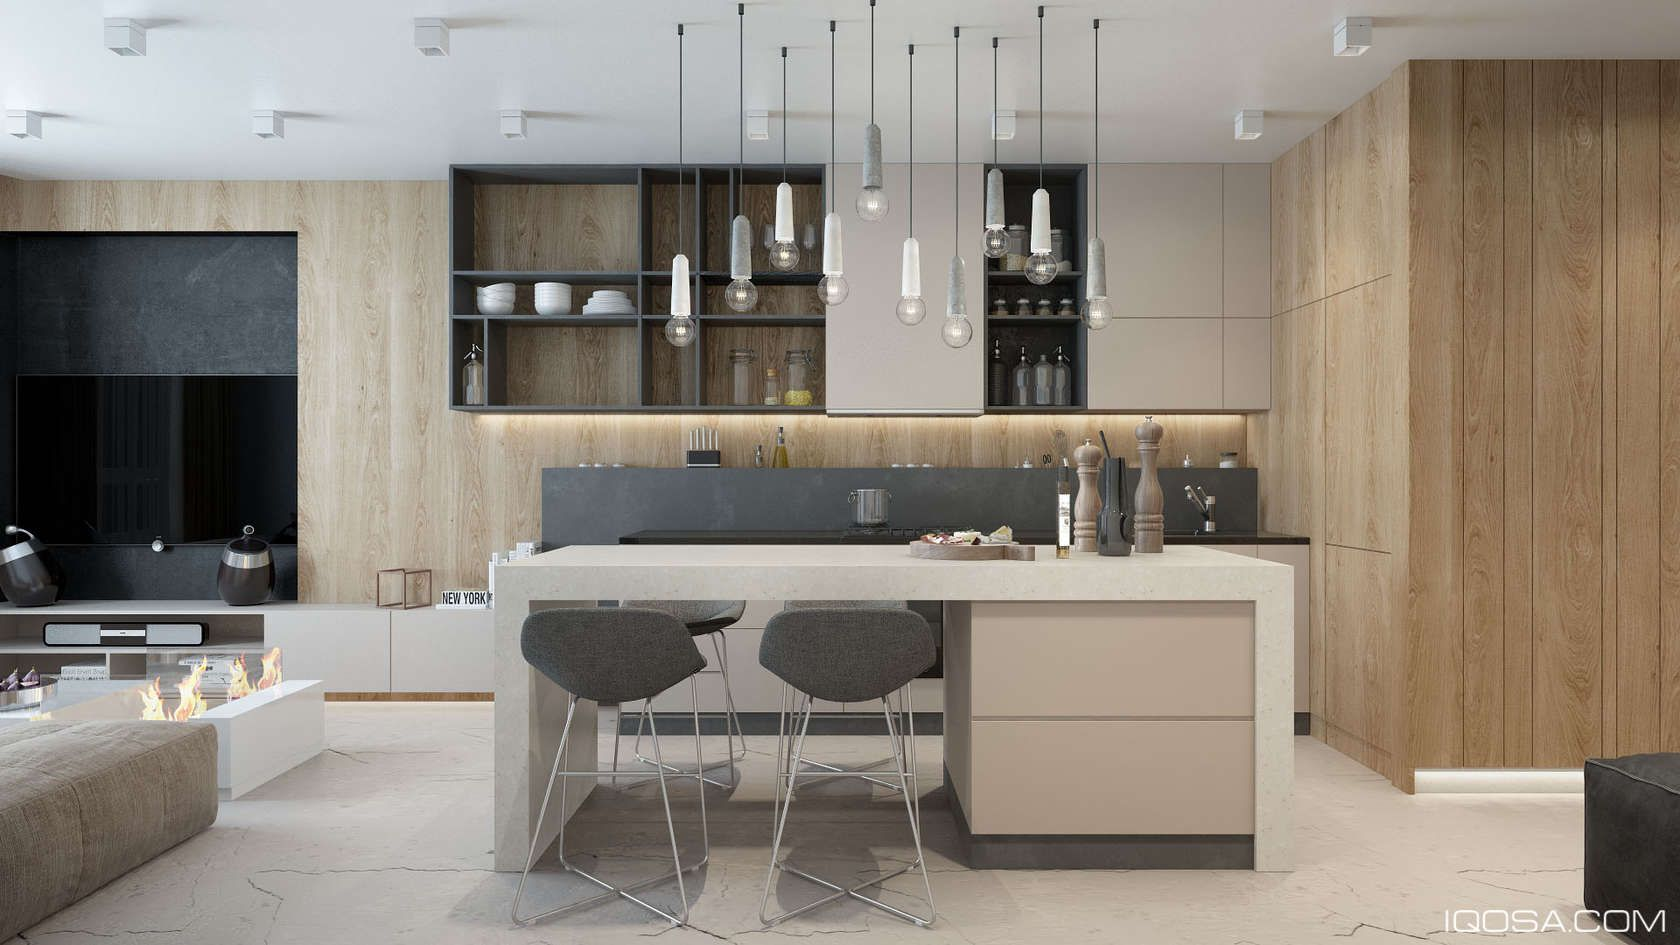 An Approachable Take On Luxury Apartment Design Modern Kitchen Design Modern Apartment Design Contemporary Kitchen Design